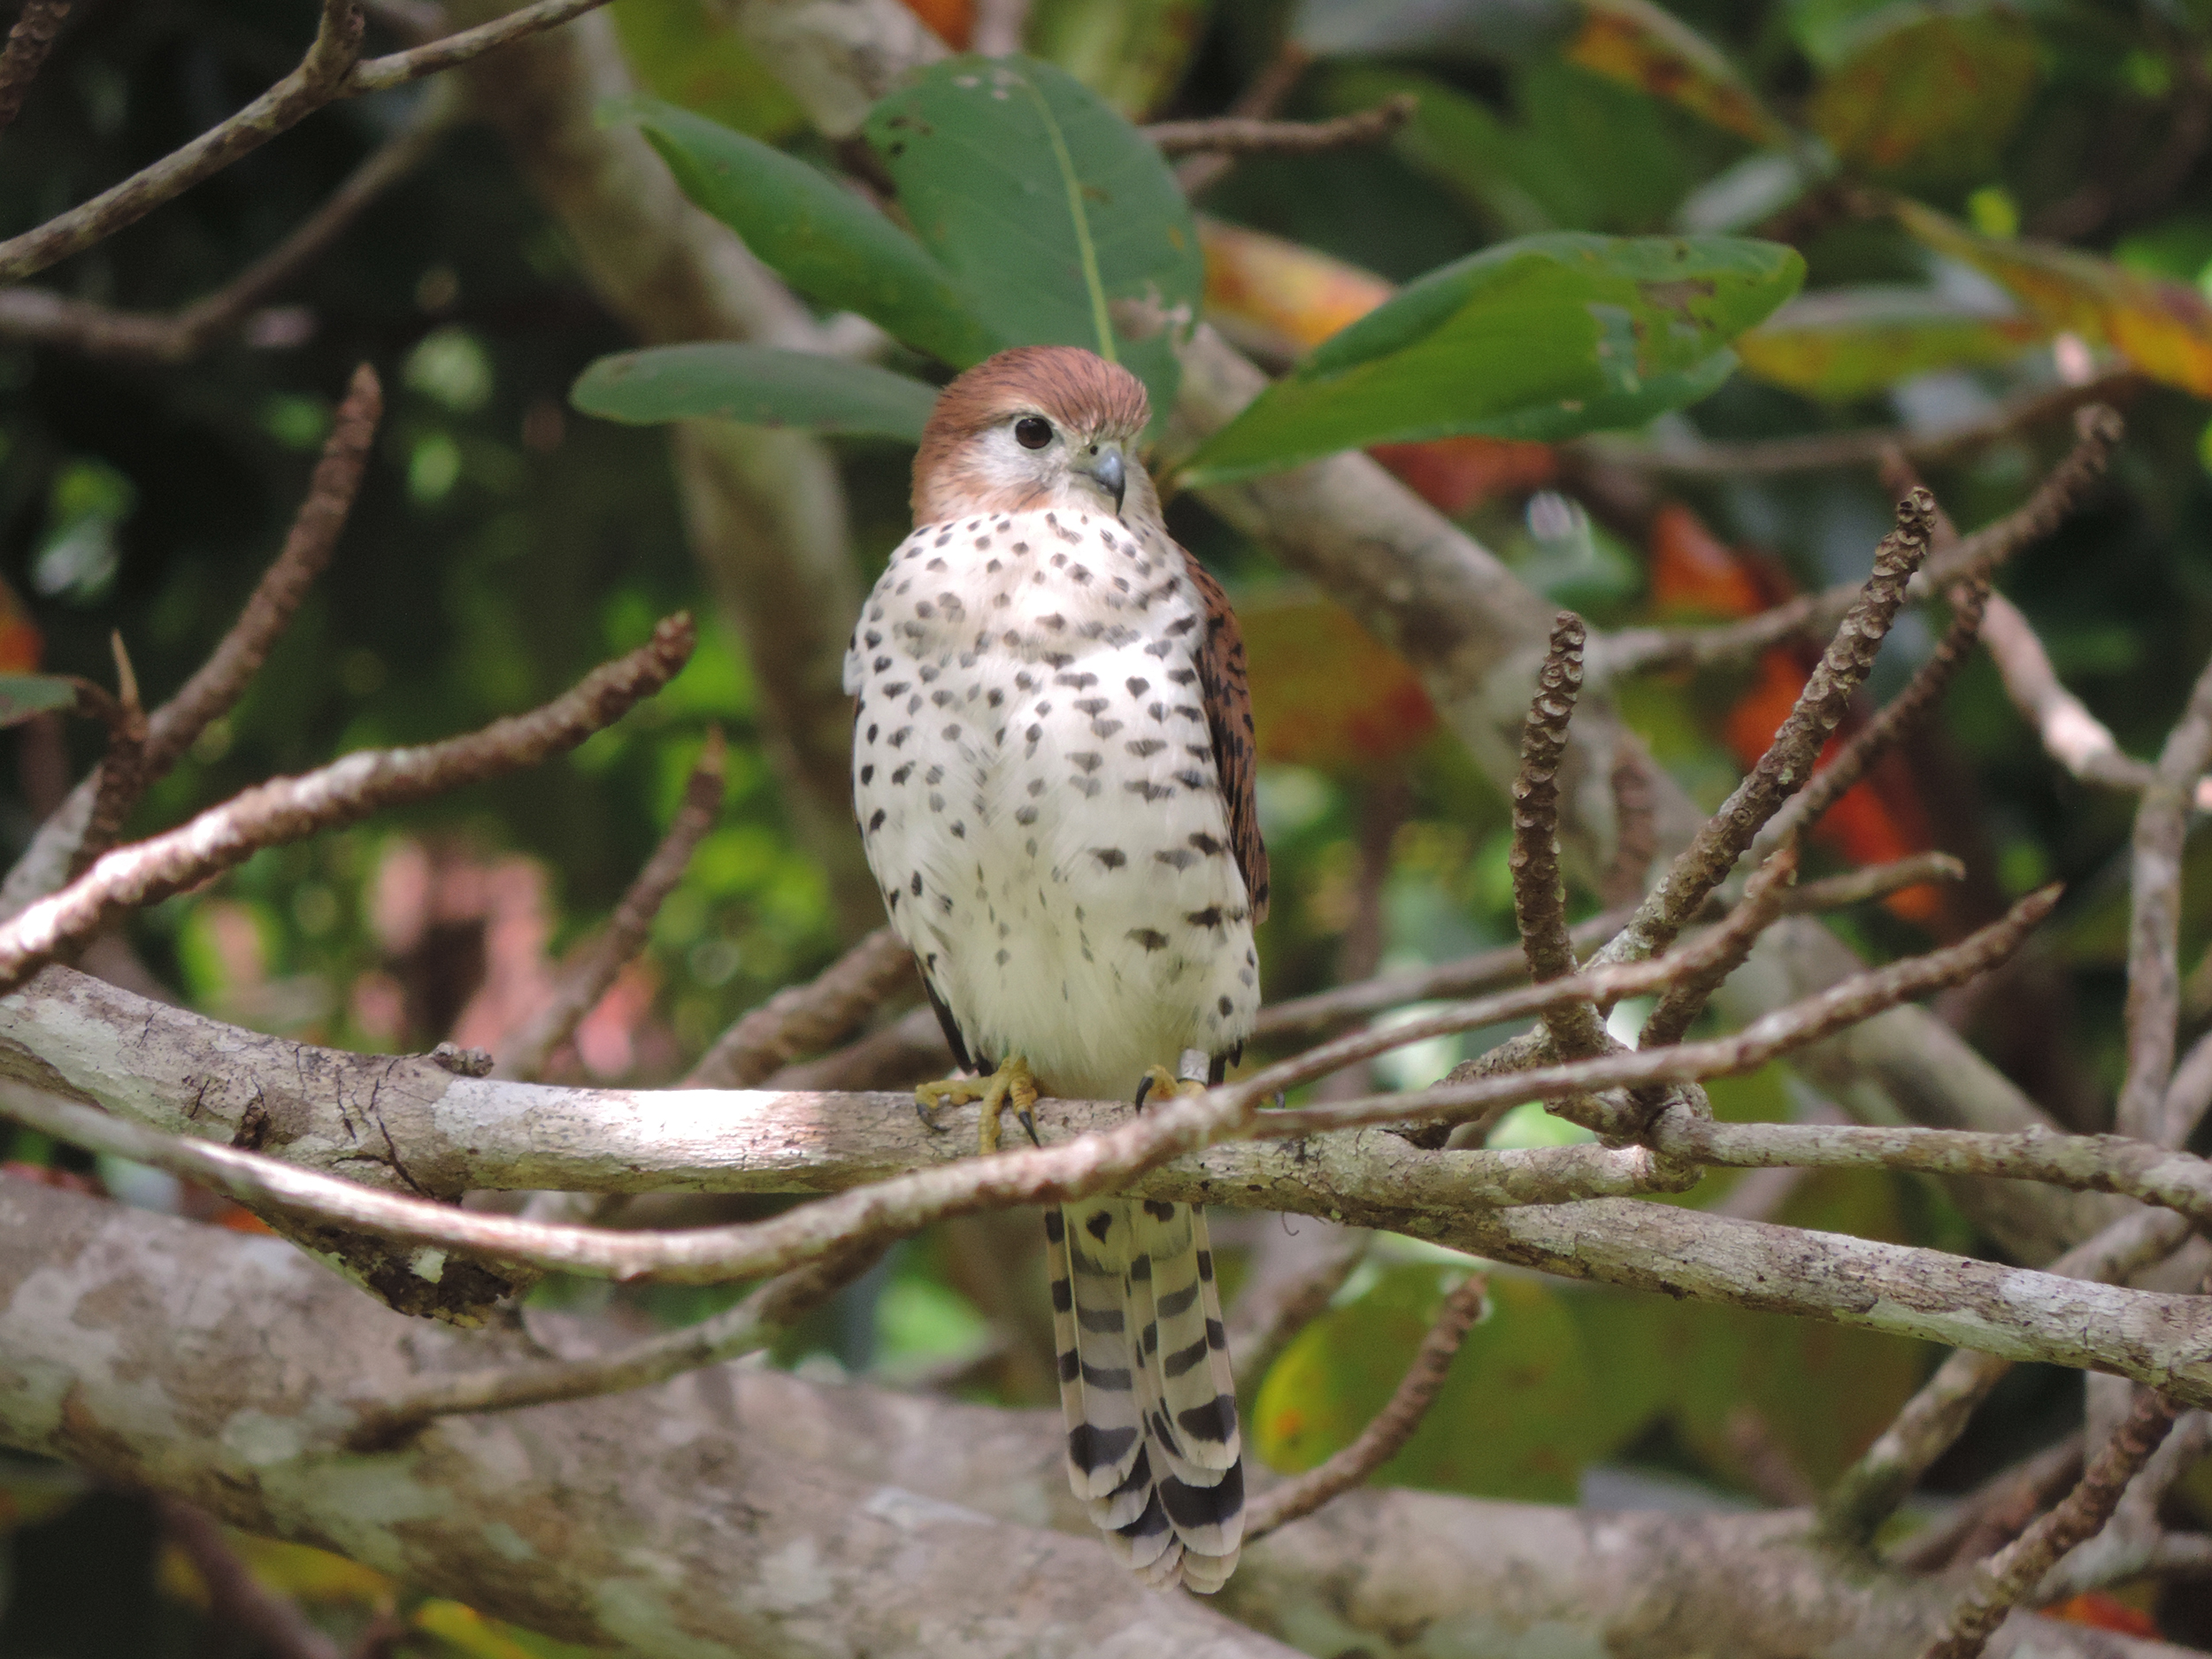 A Mauritius kestrel sits on a branch in a lush forest